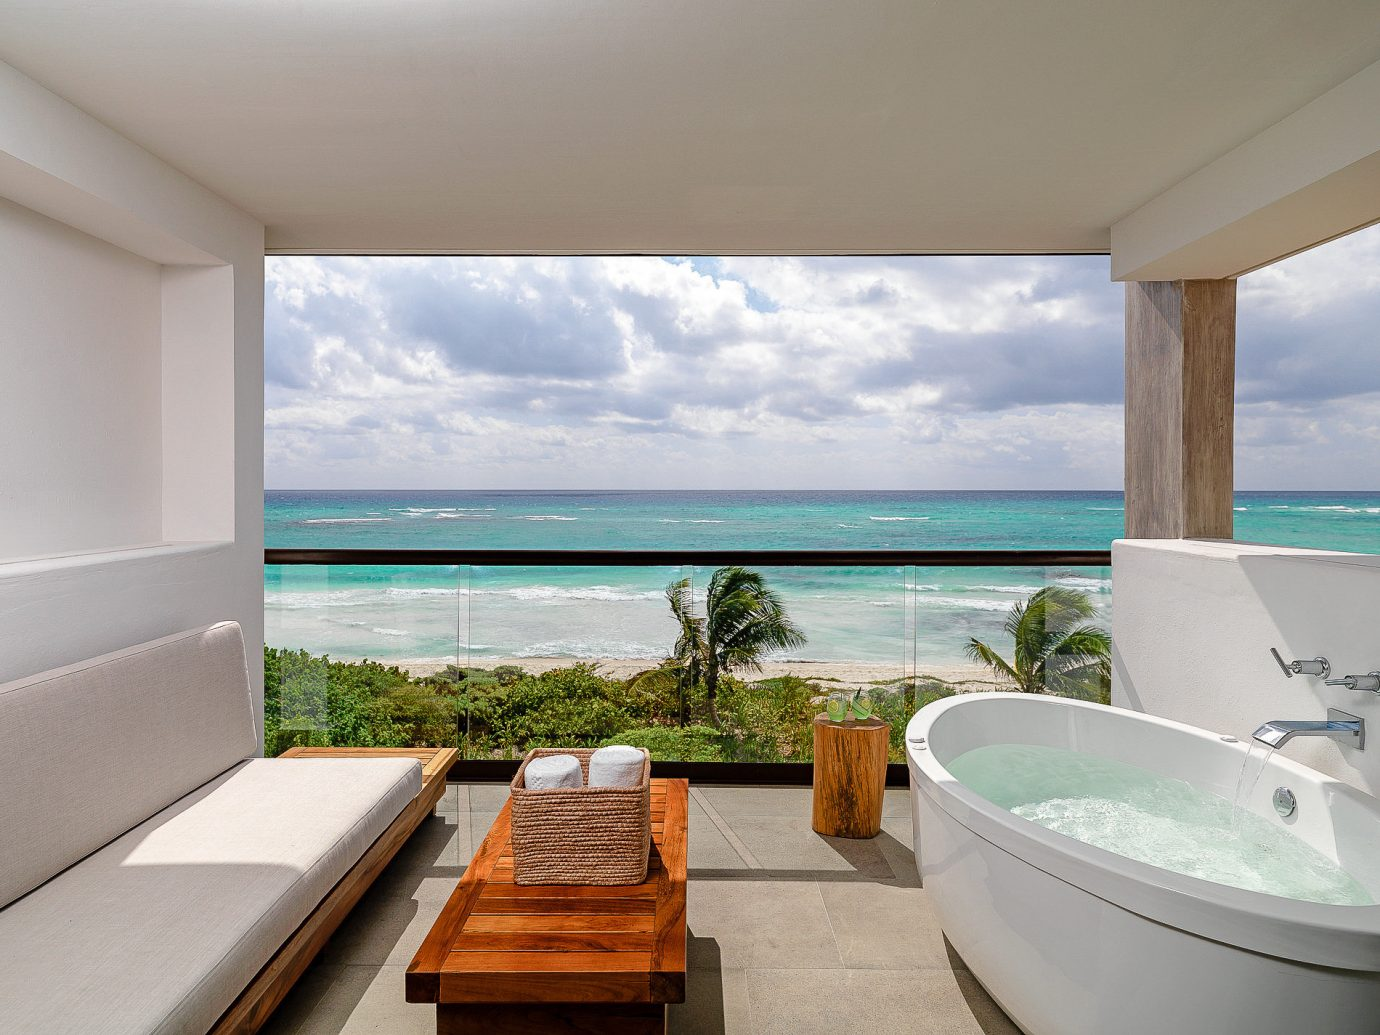 Boutique Hotels Hotels Luxury Travel property Sea swimming pool Resort bathtub sky Ocean Villa condominium amenity penthouse apartment house overlooking Island